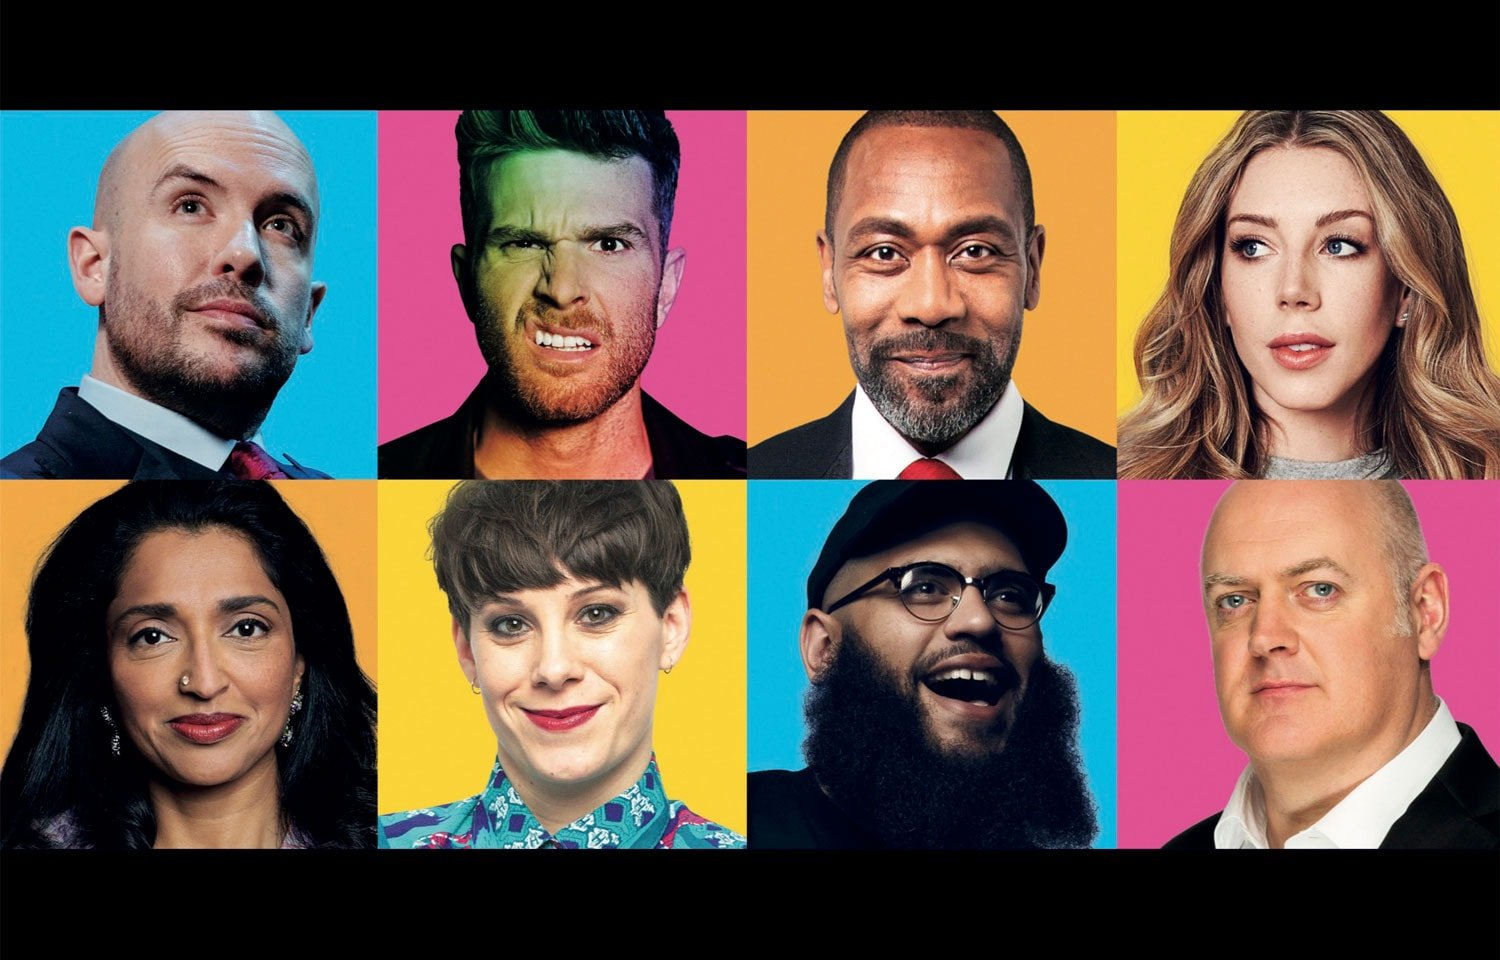 DARA, JOEL, SUZI AND TOM ALLEN JOIN COMIC RELIEF'S SPECTACULAR